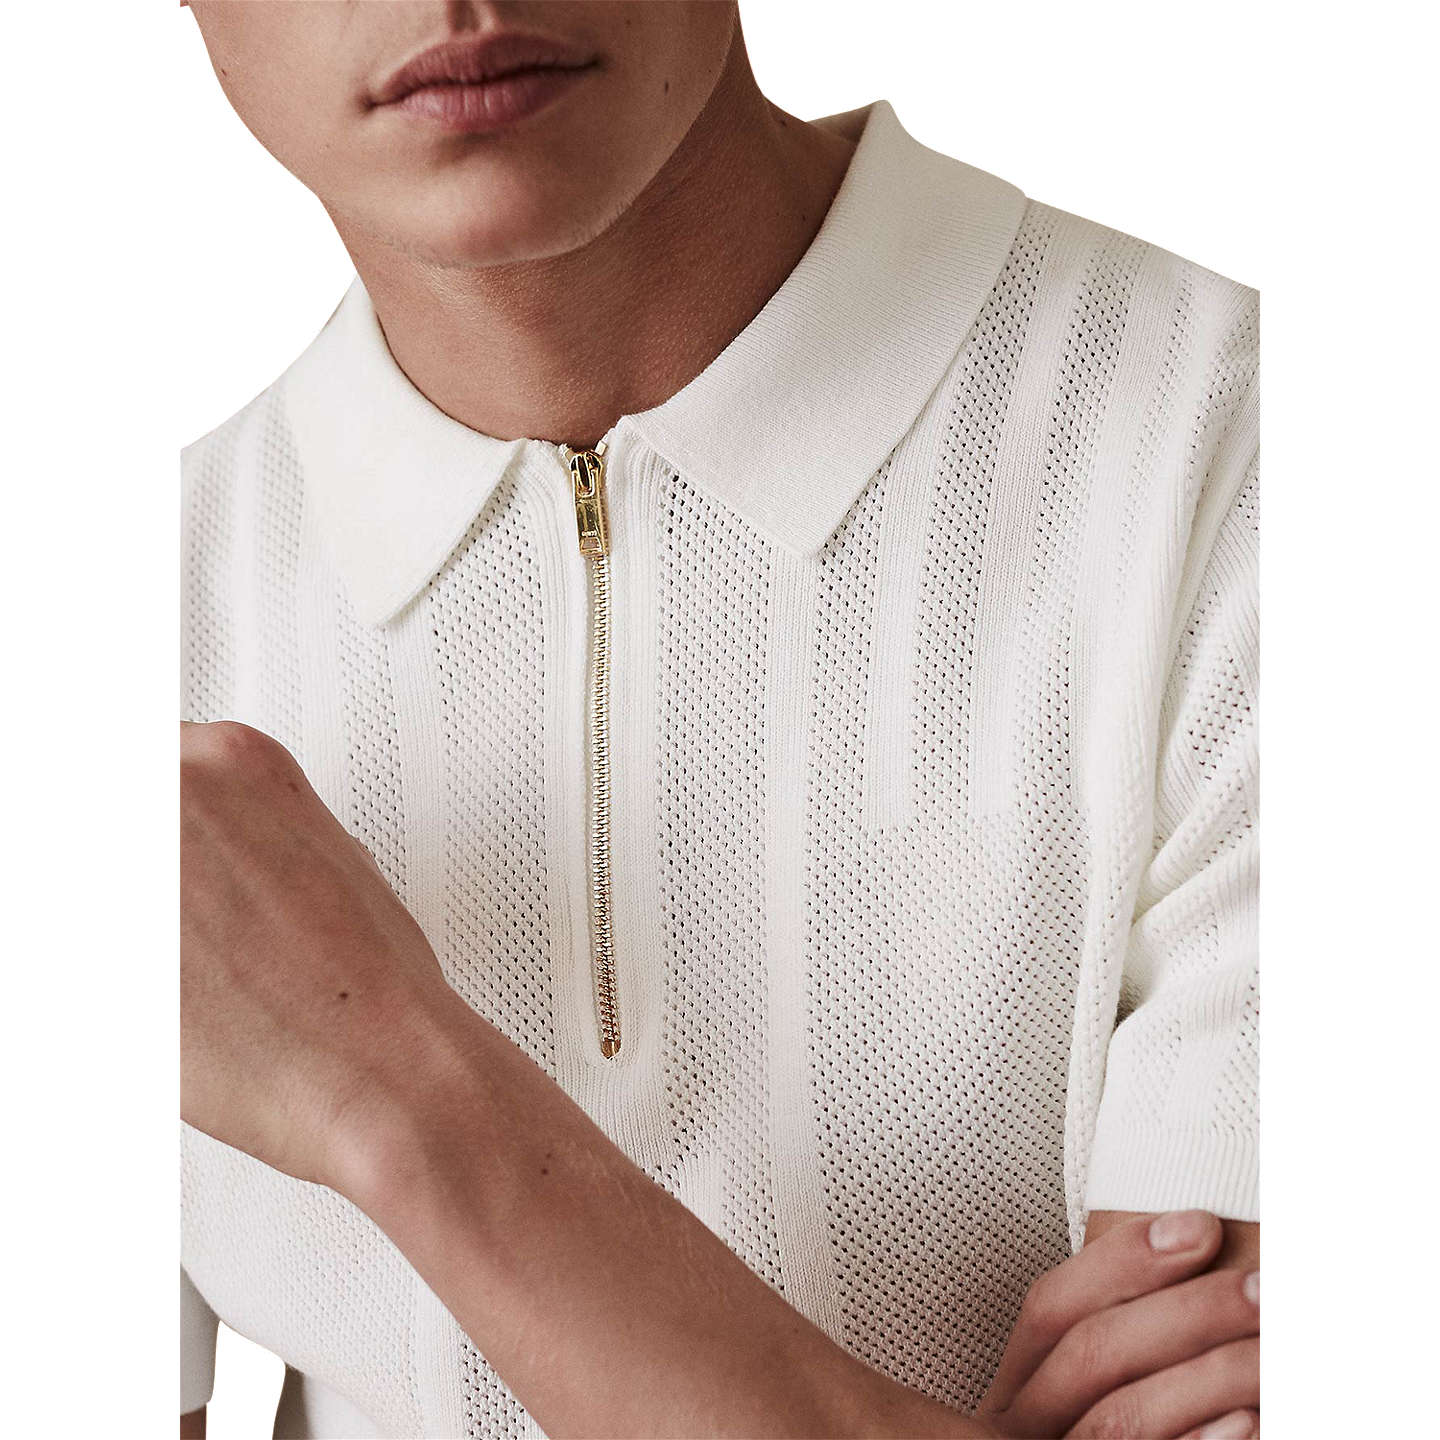 BuyReiss Reddington Textured Polo Shirt, Ecru, S Online at johnlewis.com